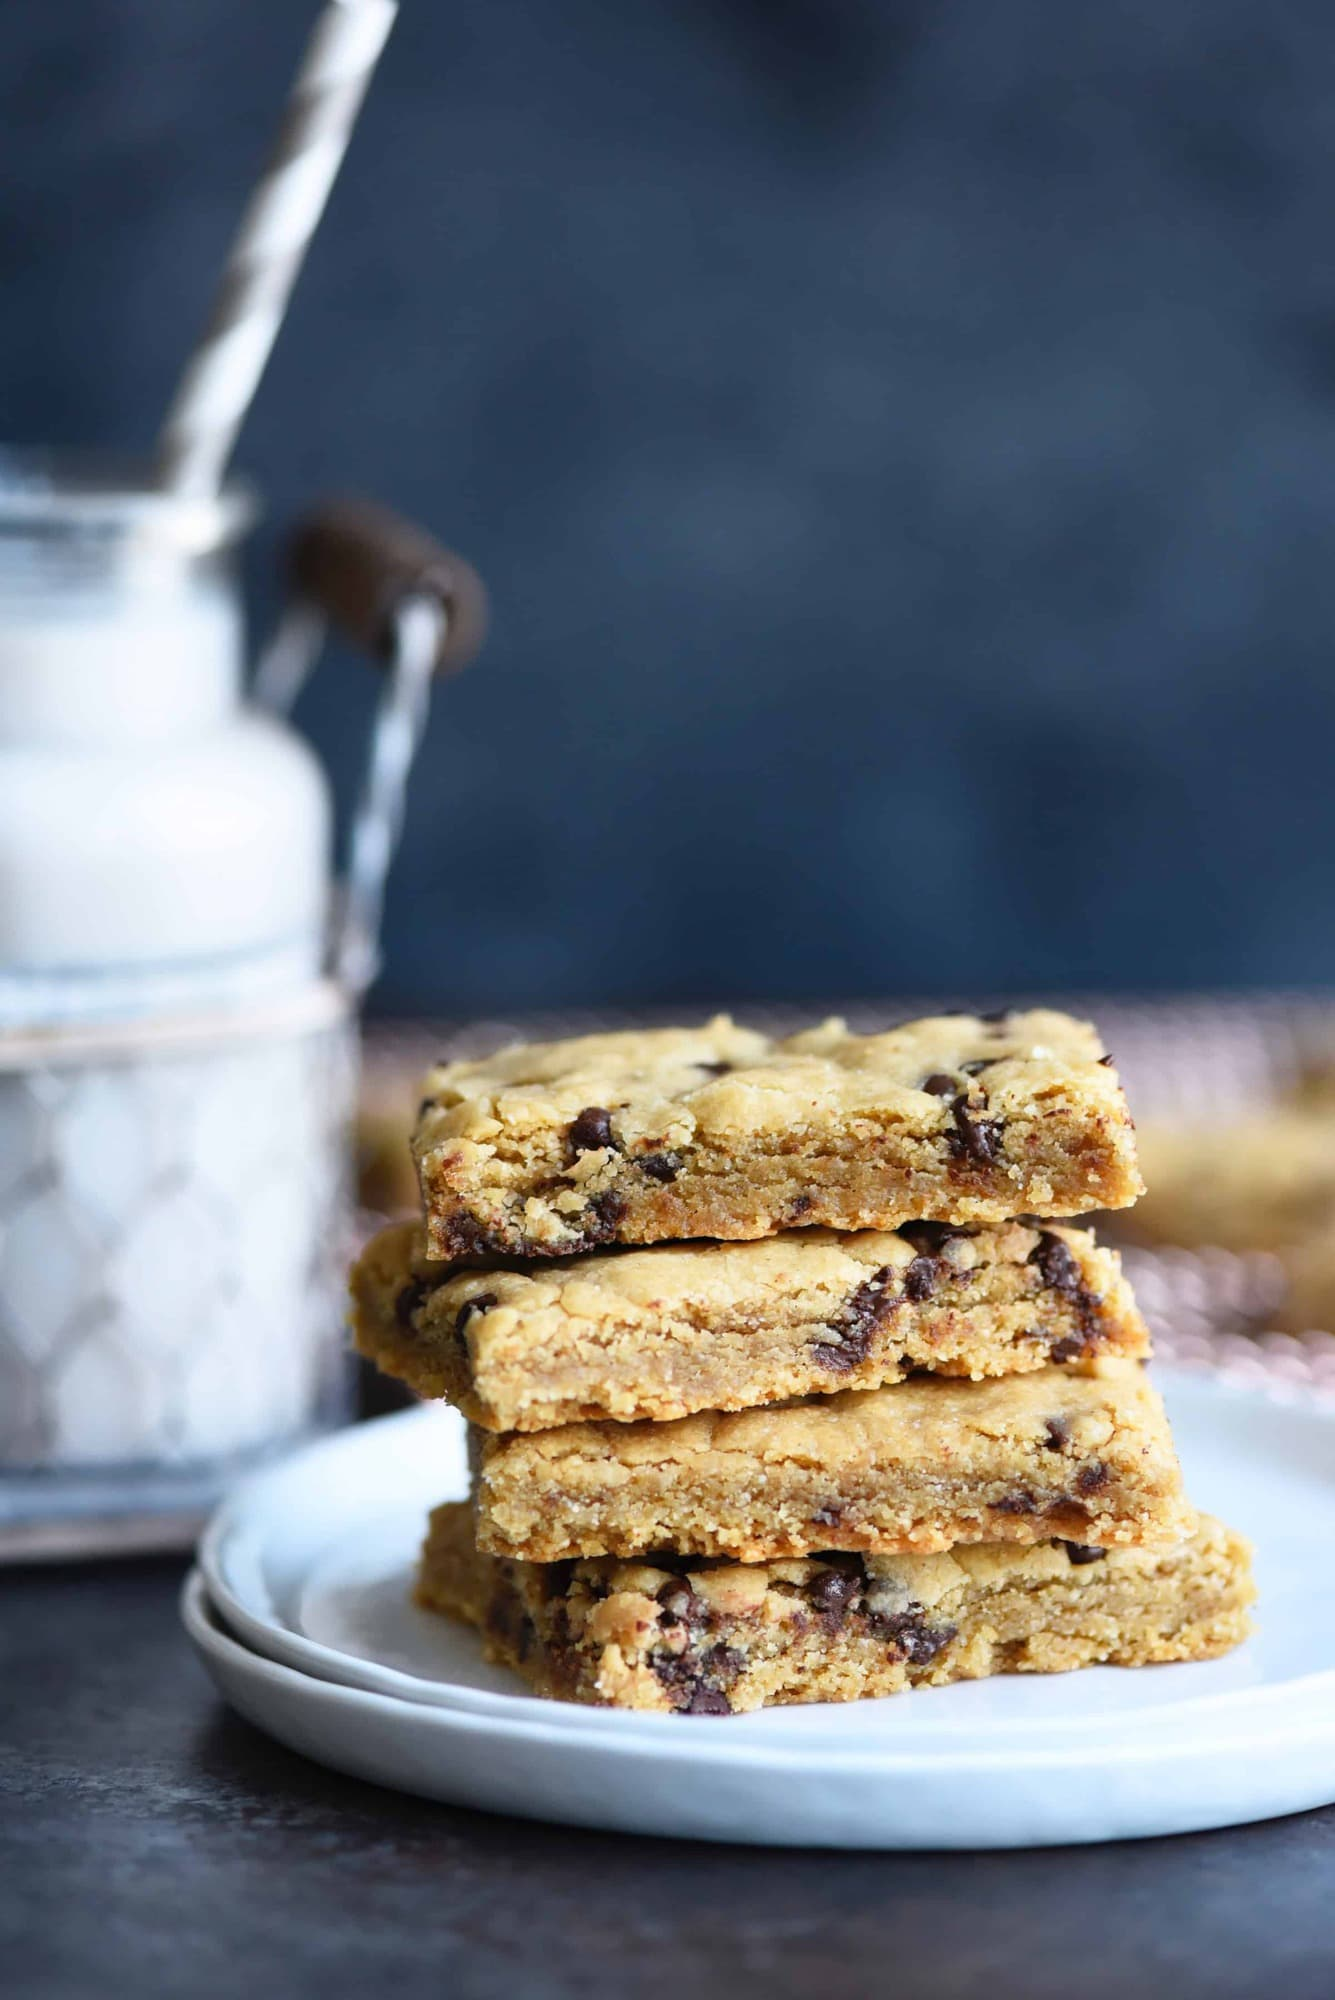 Side view of stack of chocolate chip cookie bars on a white plate with milk in background